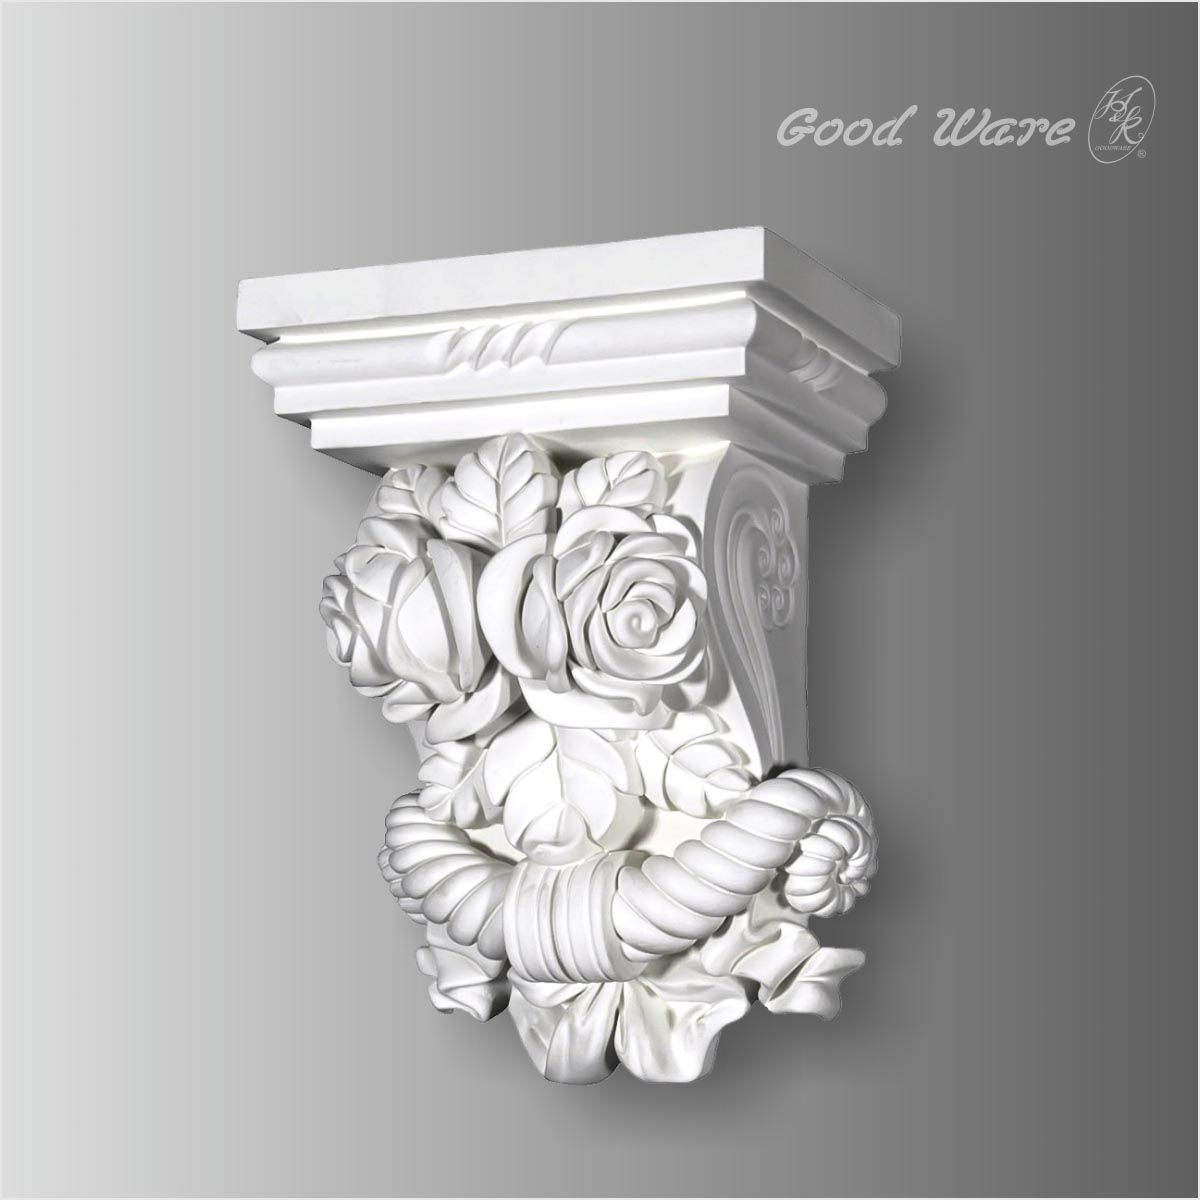 Medium Crop Of Corbels For Sale